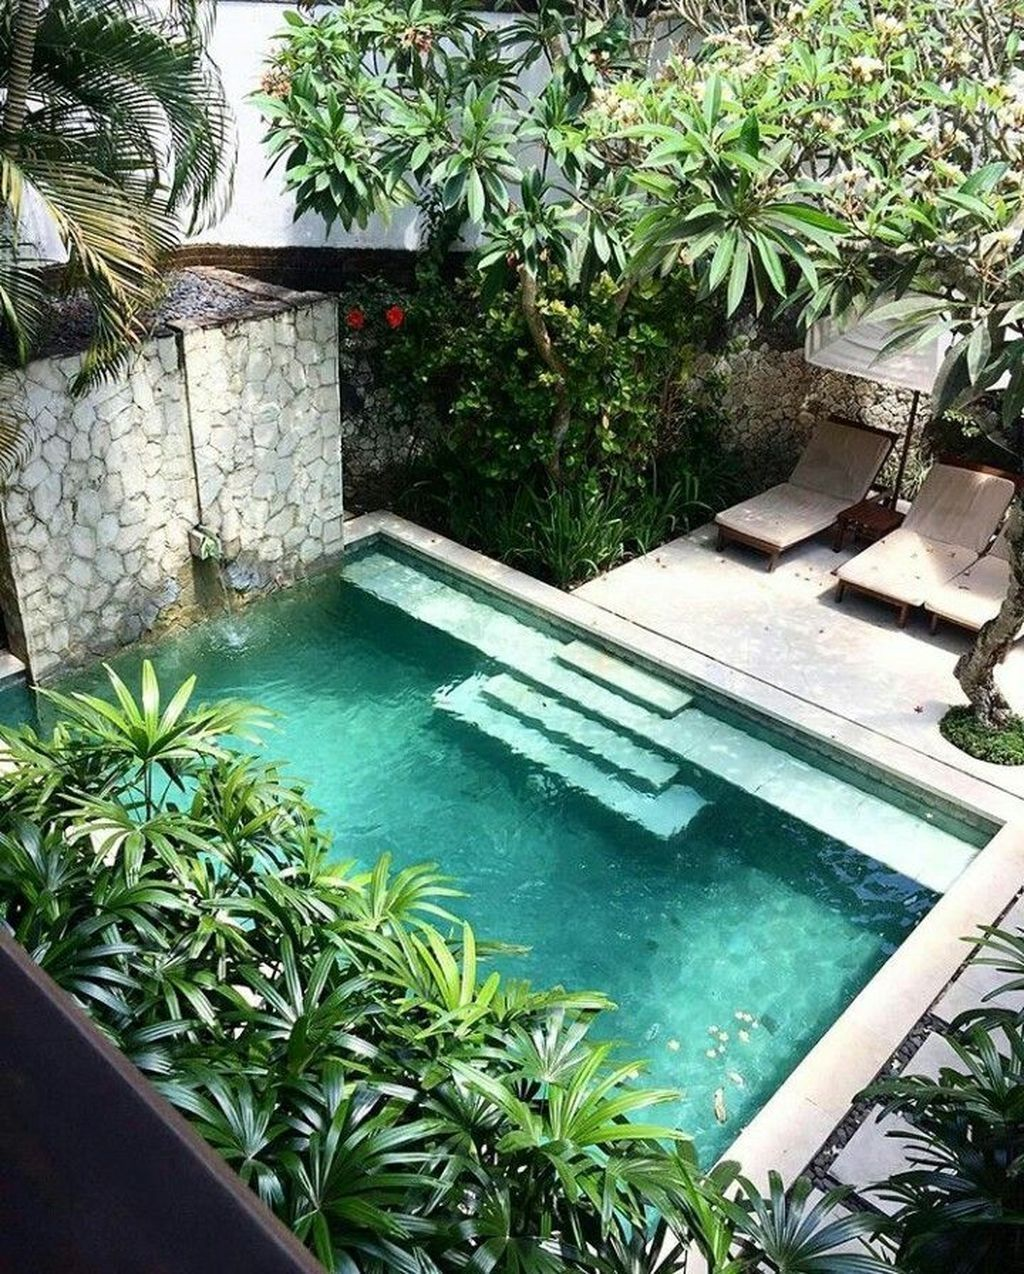 40 Inexpensive Pool Design Ideas For Your Home Small Courtyard Gardens Courtyard Gardens Design Courtyard Garden